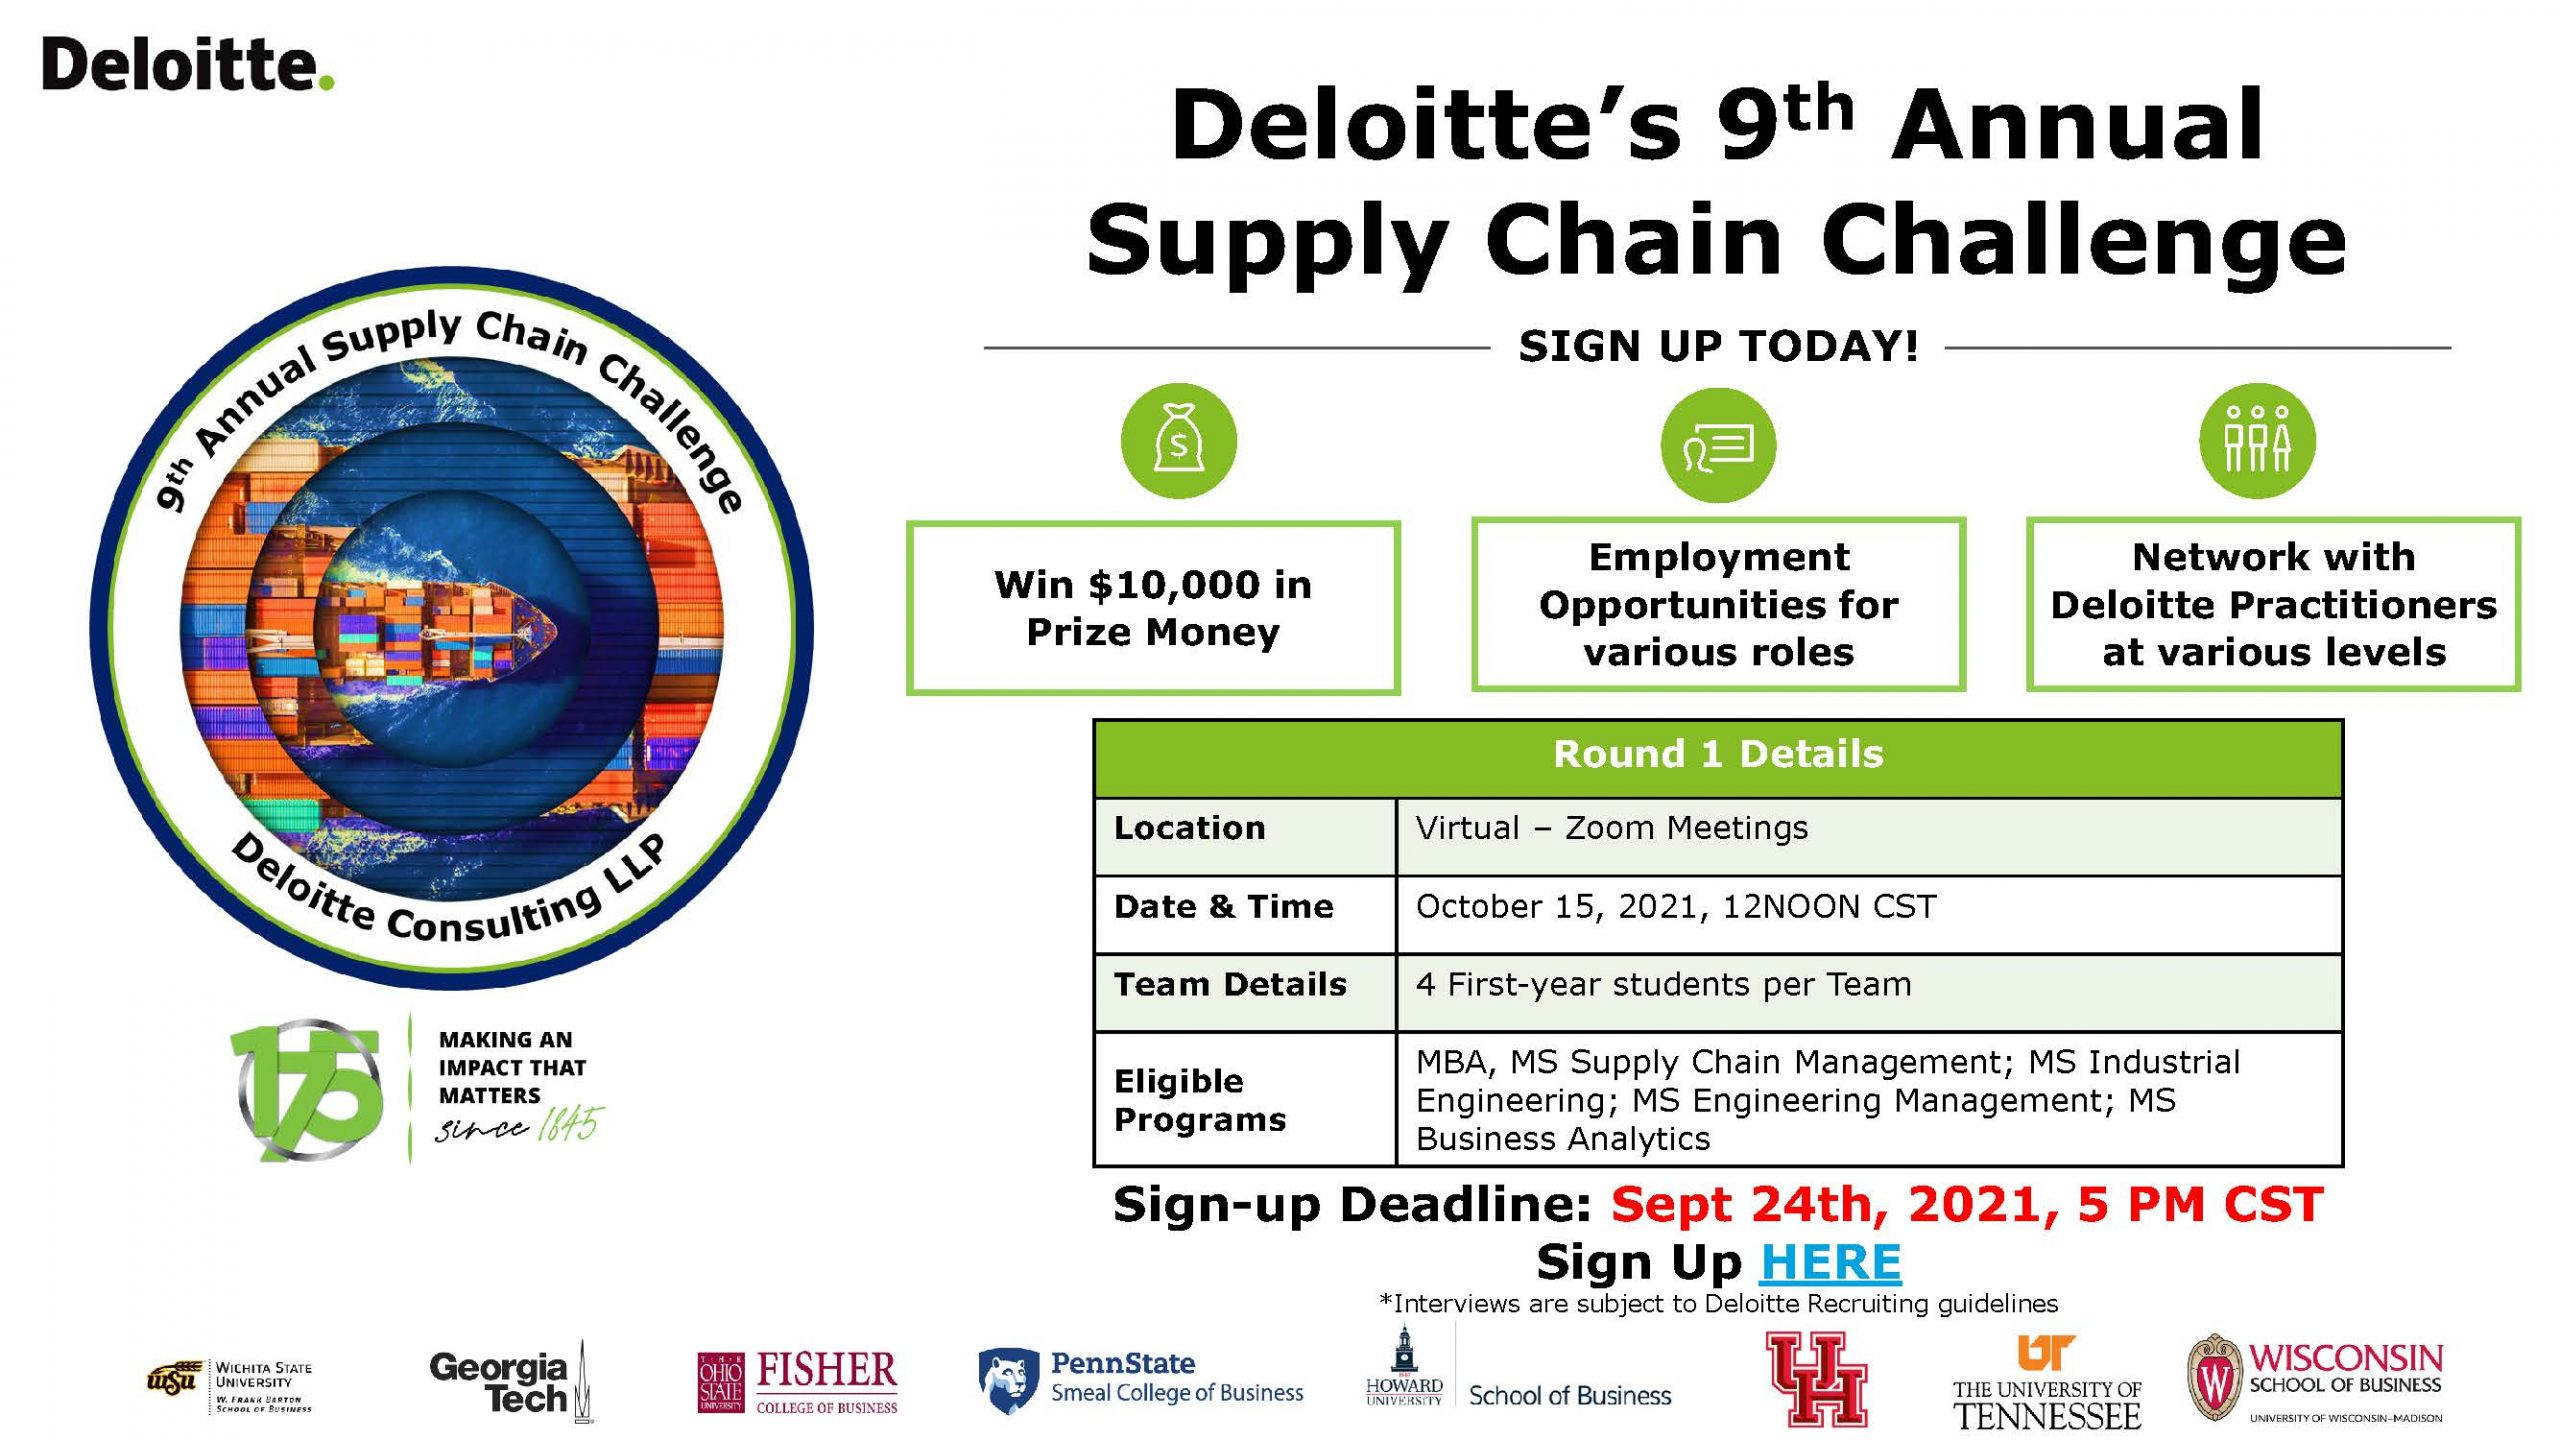 Deloitte's 9th Annual Supply Chain Challenge - Sign up today! - Win $10,000 in Prize Money, Employment Opportunities for various roles, Network with Deloitte Practitioners at various levels. Round 1 Details: Location - Virtual Zoom Meetings; Date & Time - Octover 15, 2021 12NOON CST; Team Details - 4 First-year students per team; Eligible programs - MBA, MS Supply Chain Management, MS Industrial Engineering, MS Engineering Management, MS Business Analytics; Sign up deadline: Sept 24th, 5pm CST *Interviews are subject to Deloitte Recruiting guidelines